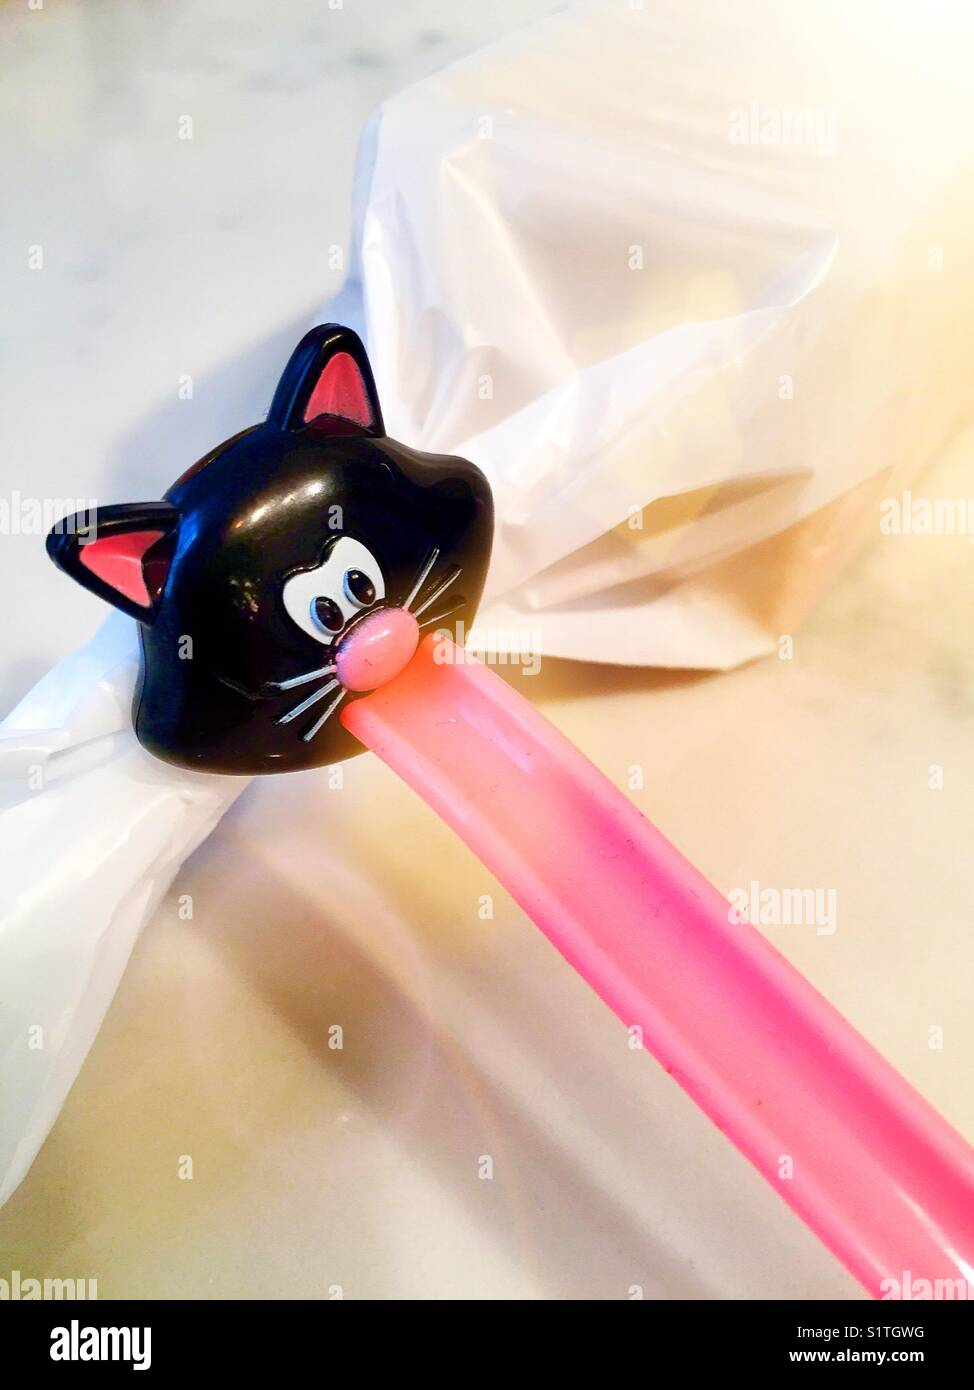 Humorous novelty bag clip of cat face and tongue, USA - Stock Image